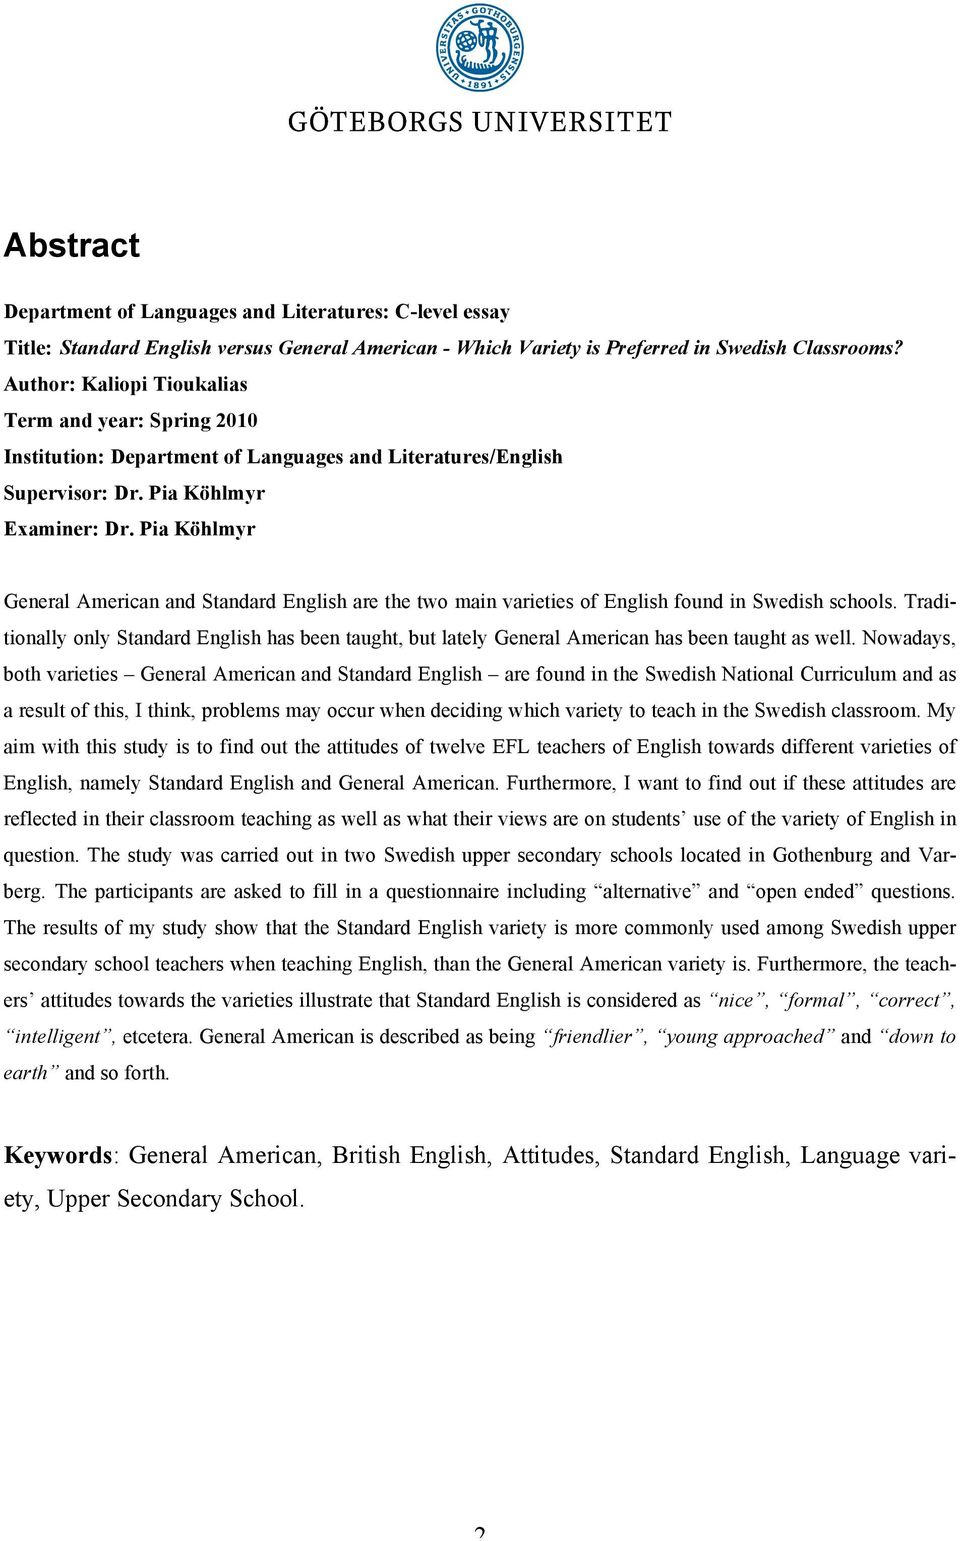 Pia Köhlmyr General American and Standard English are the two main varieties of English found in Swedish schools.